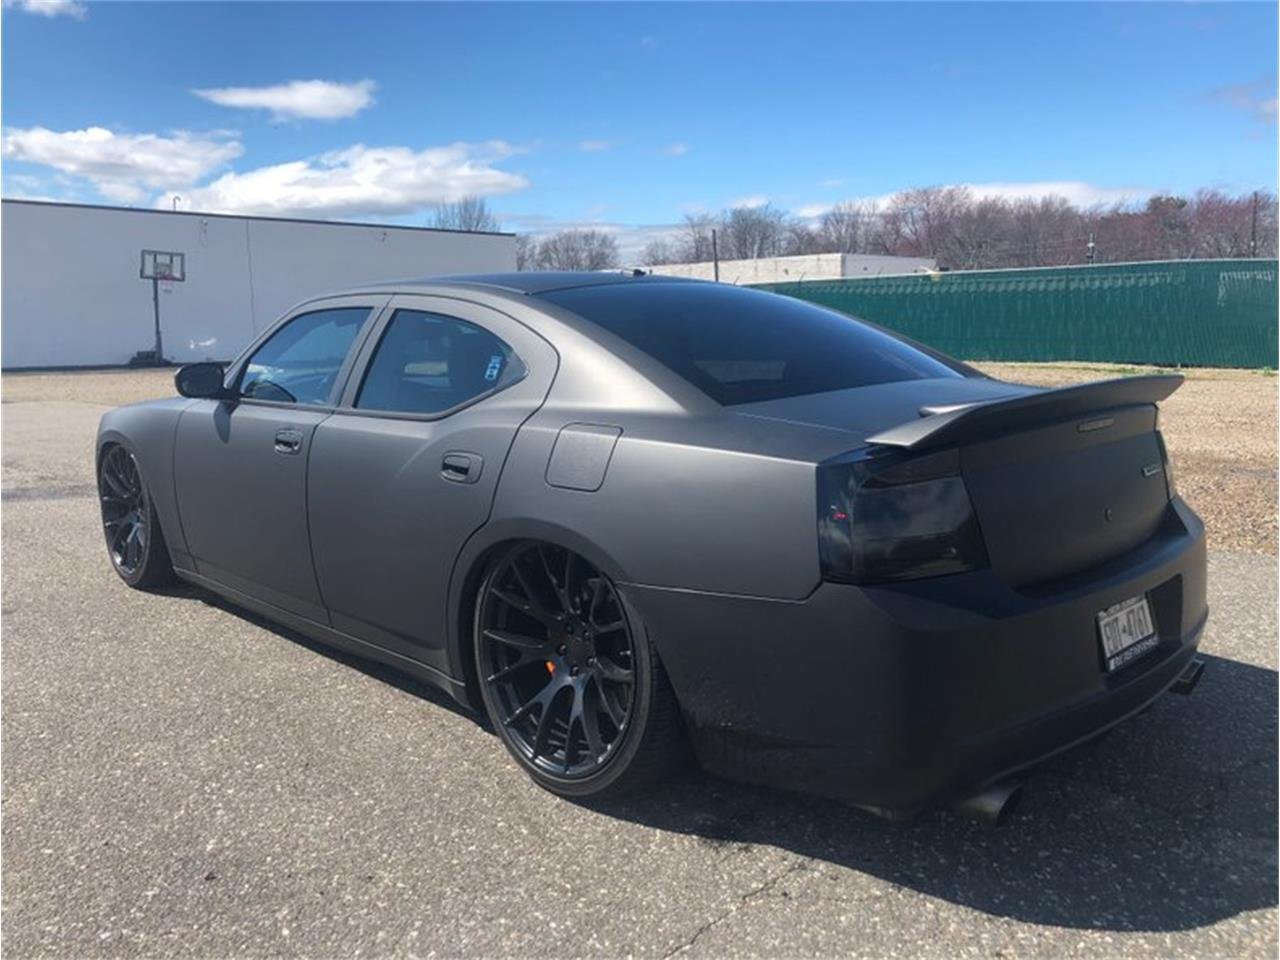 For Sale: 2006 Dodge Charger in West Babylon, New York